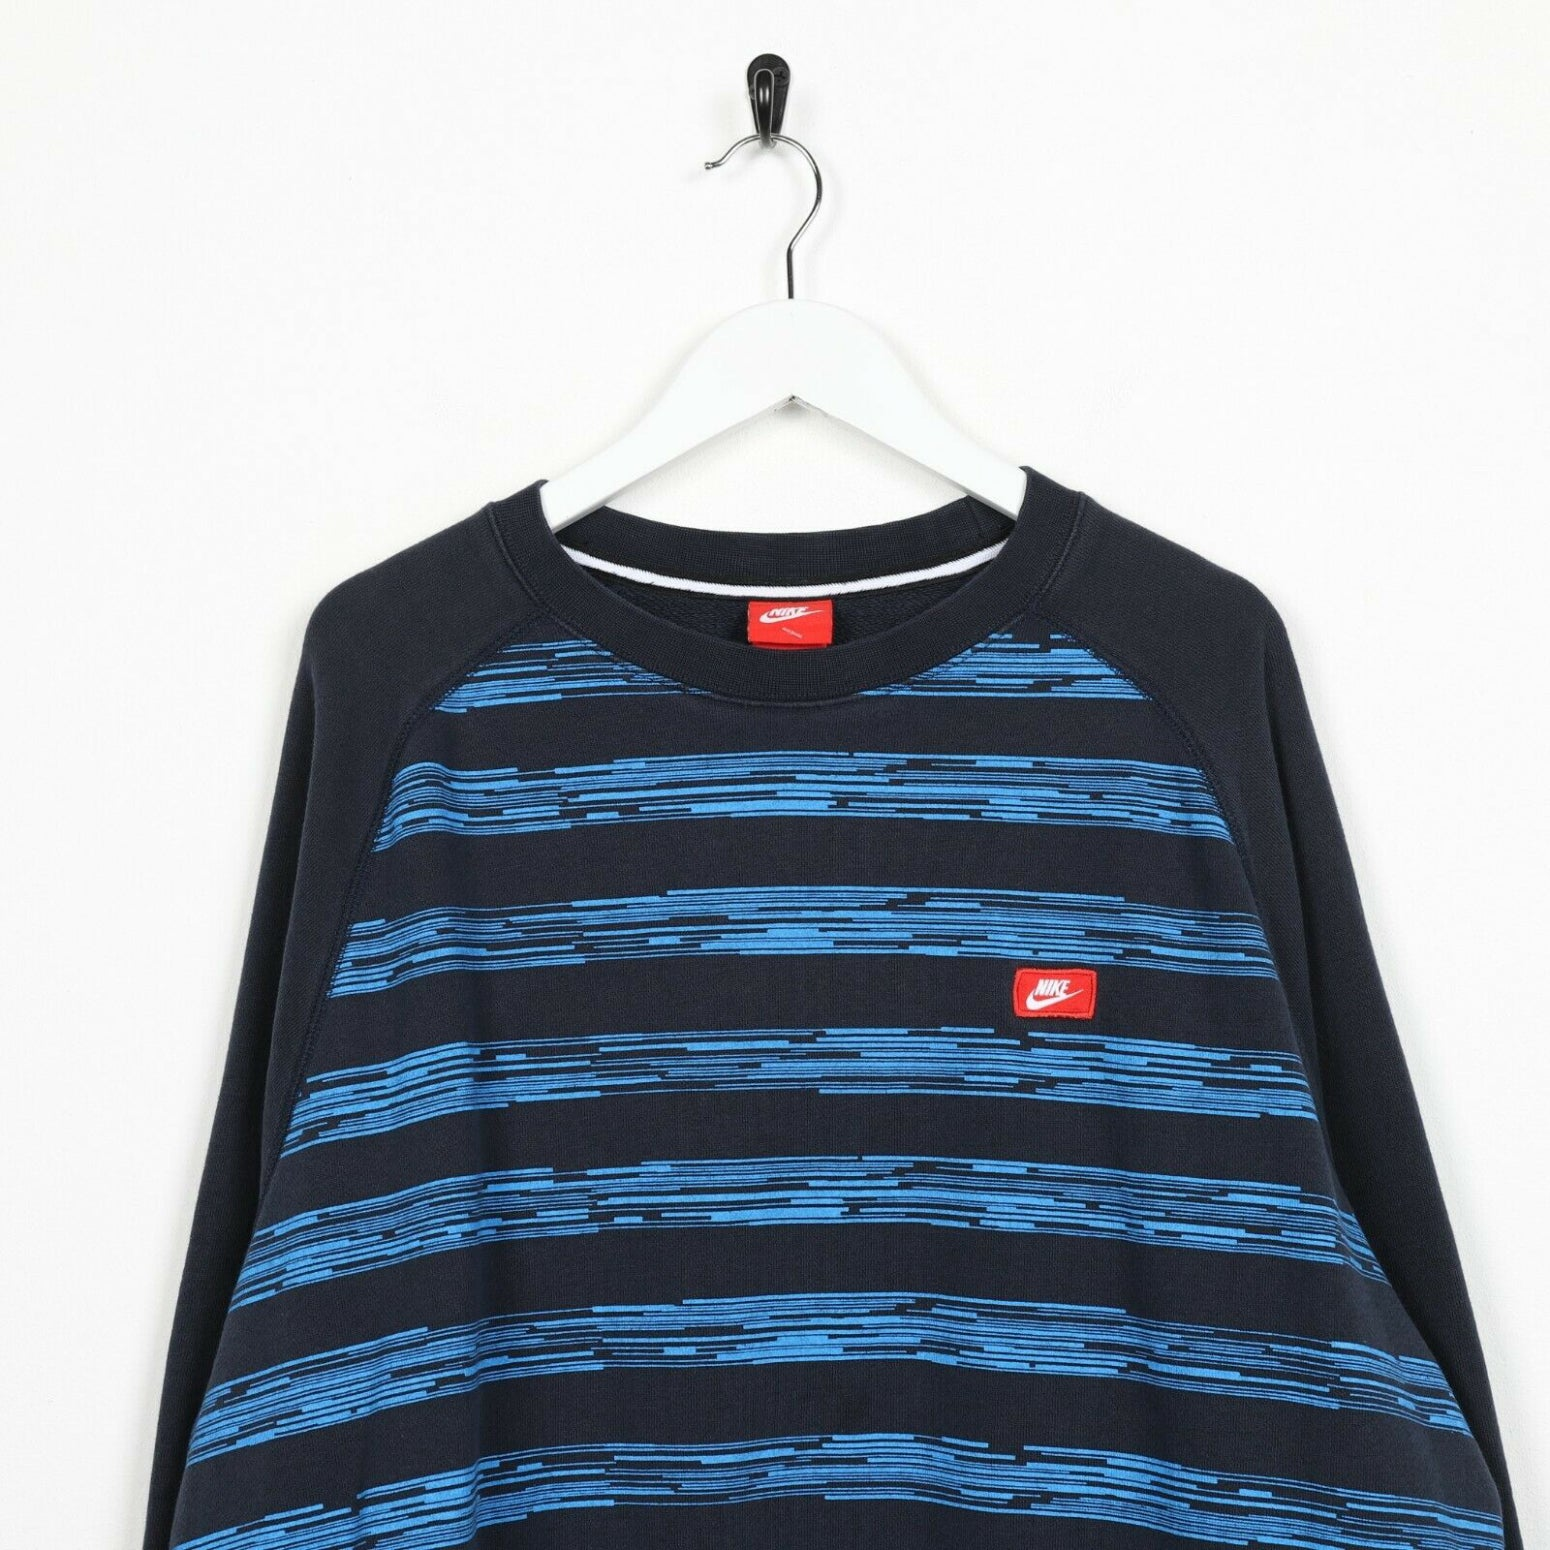 Vintage NIKE Small Logo Striped Sweatshirt Jumper Navy Blue 2XL